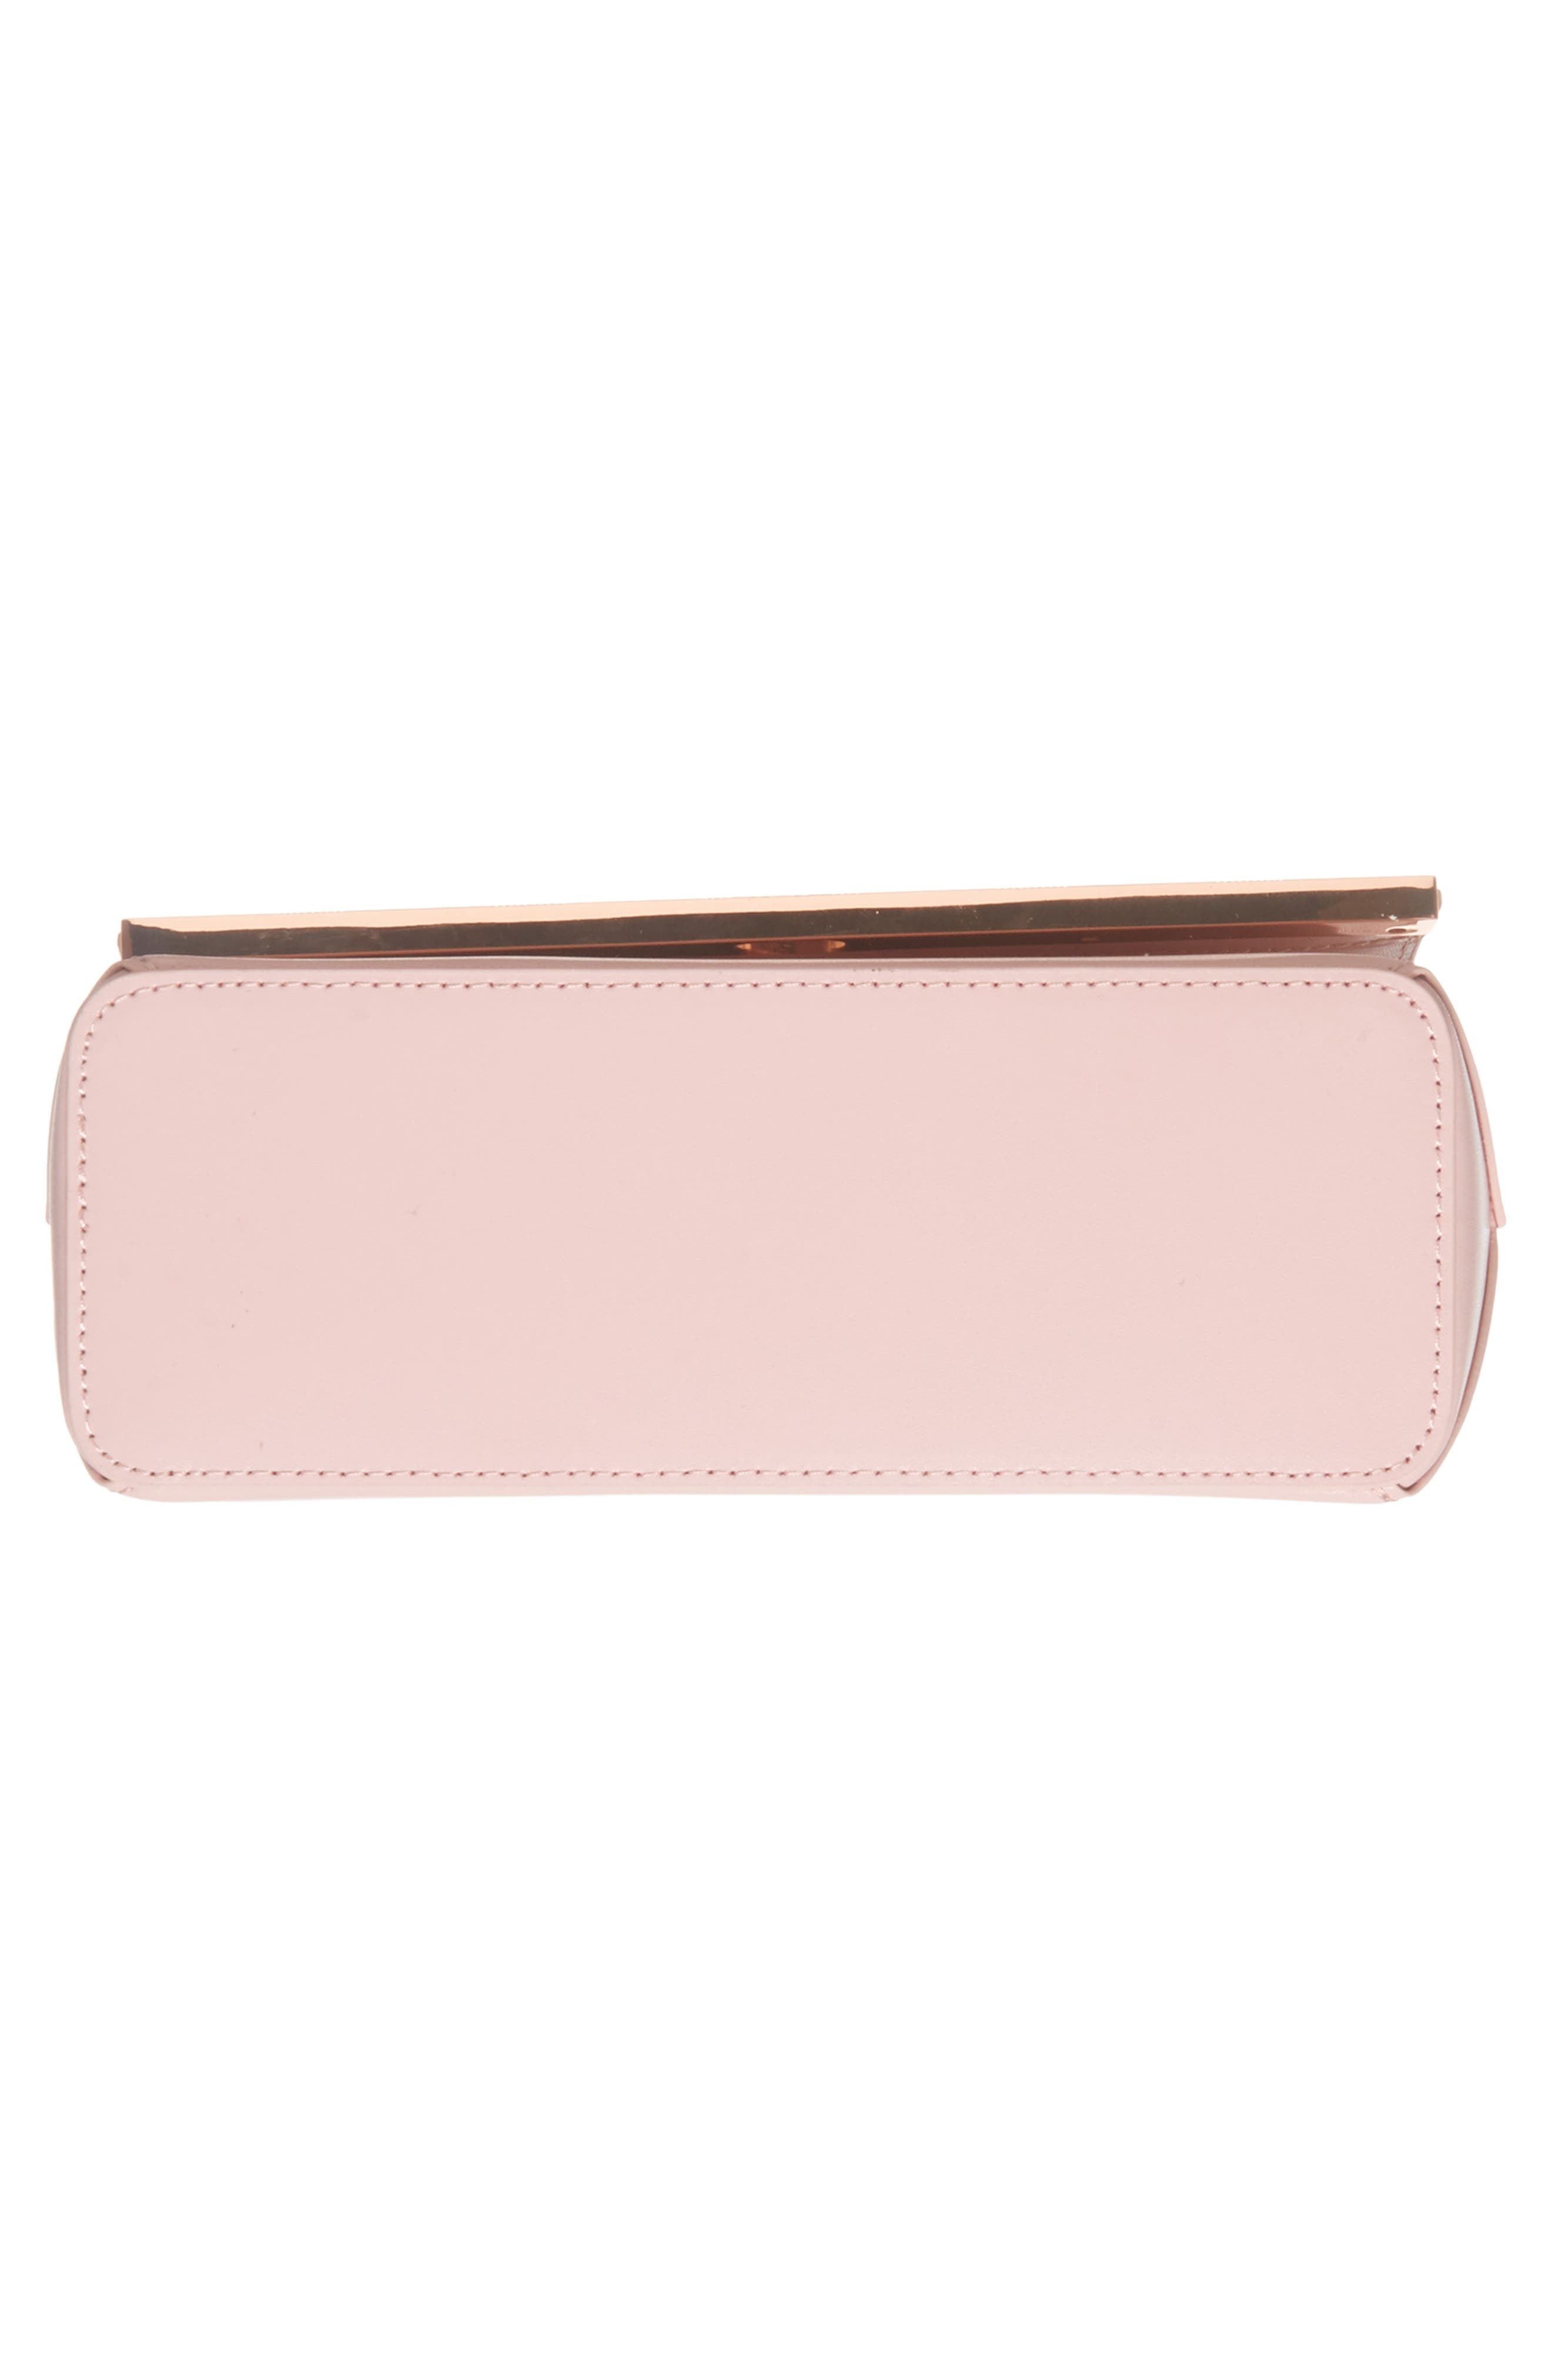 Bow Embossed Leather Crossbody Bag,                             Alternate thumbnail 6, color,                             Light Pink